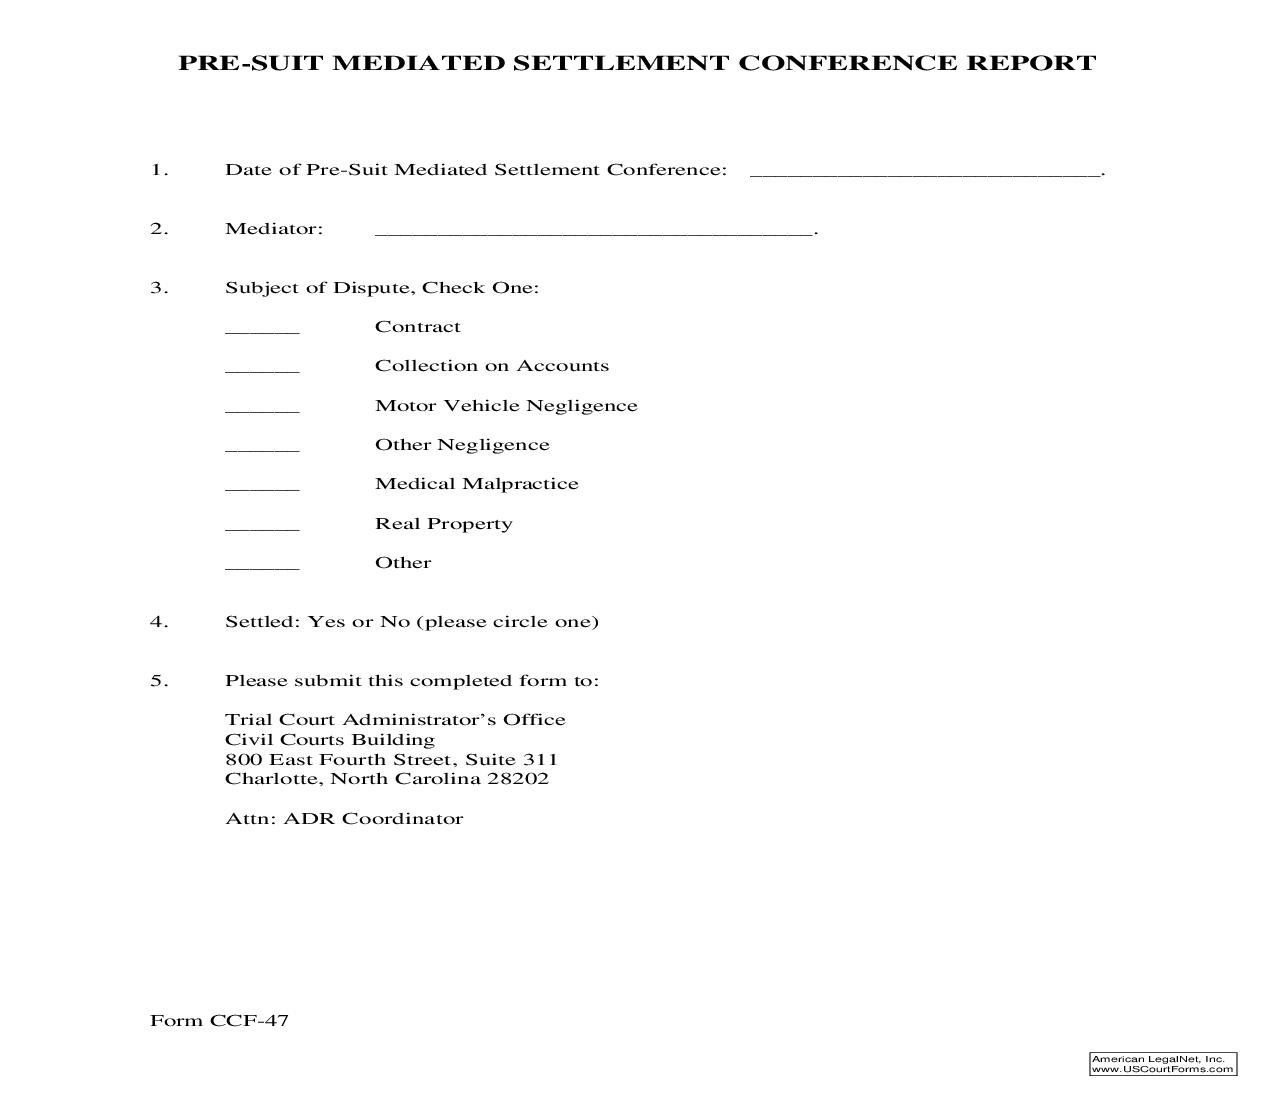 Pre-Suit Mediated Settlement Conference Report {CCF-47}   Pdf Fpdf Doc Docx   North Carolina